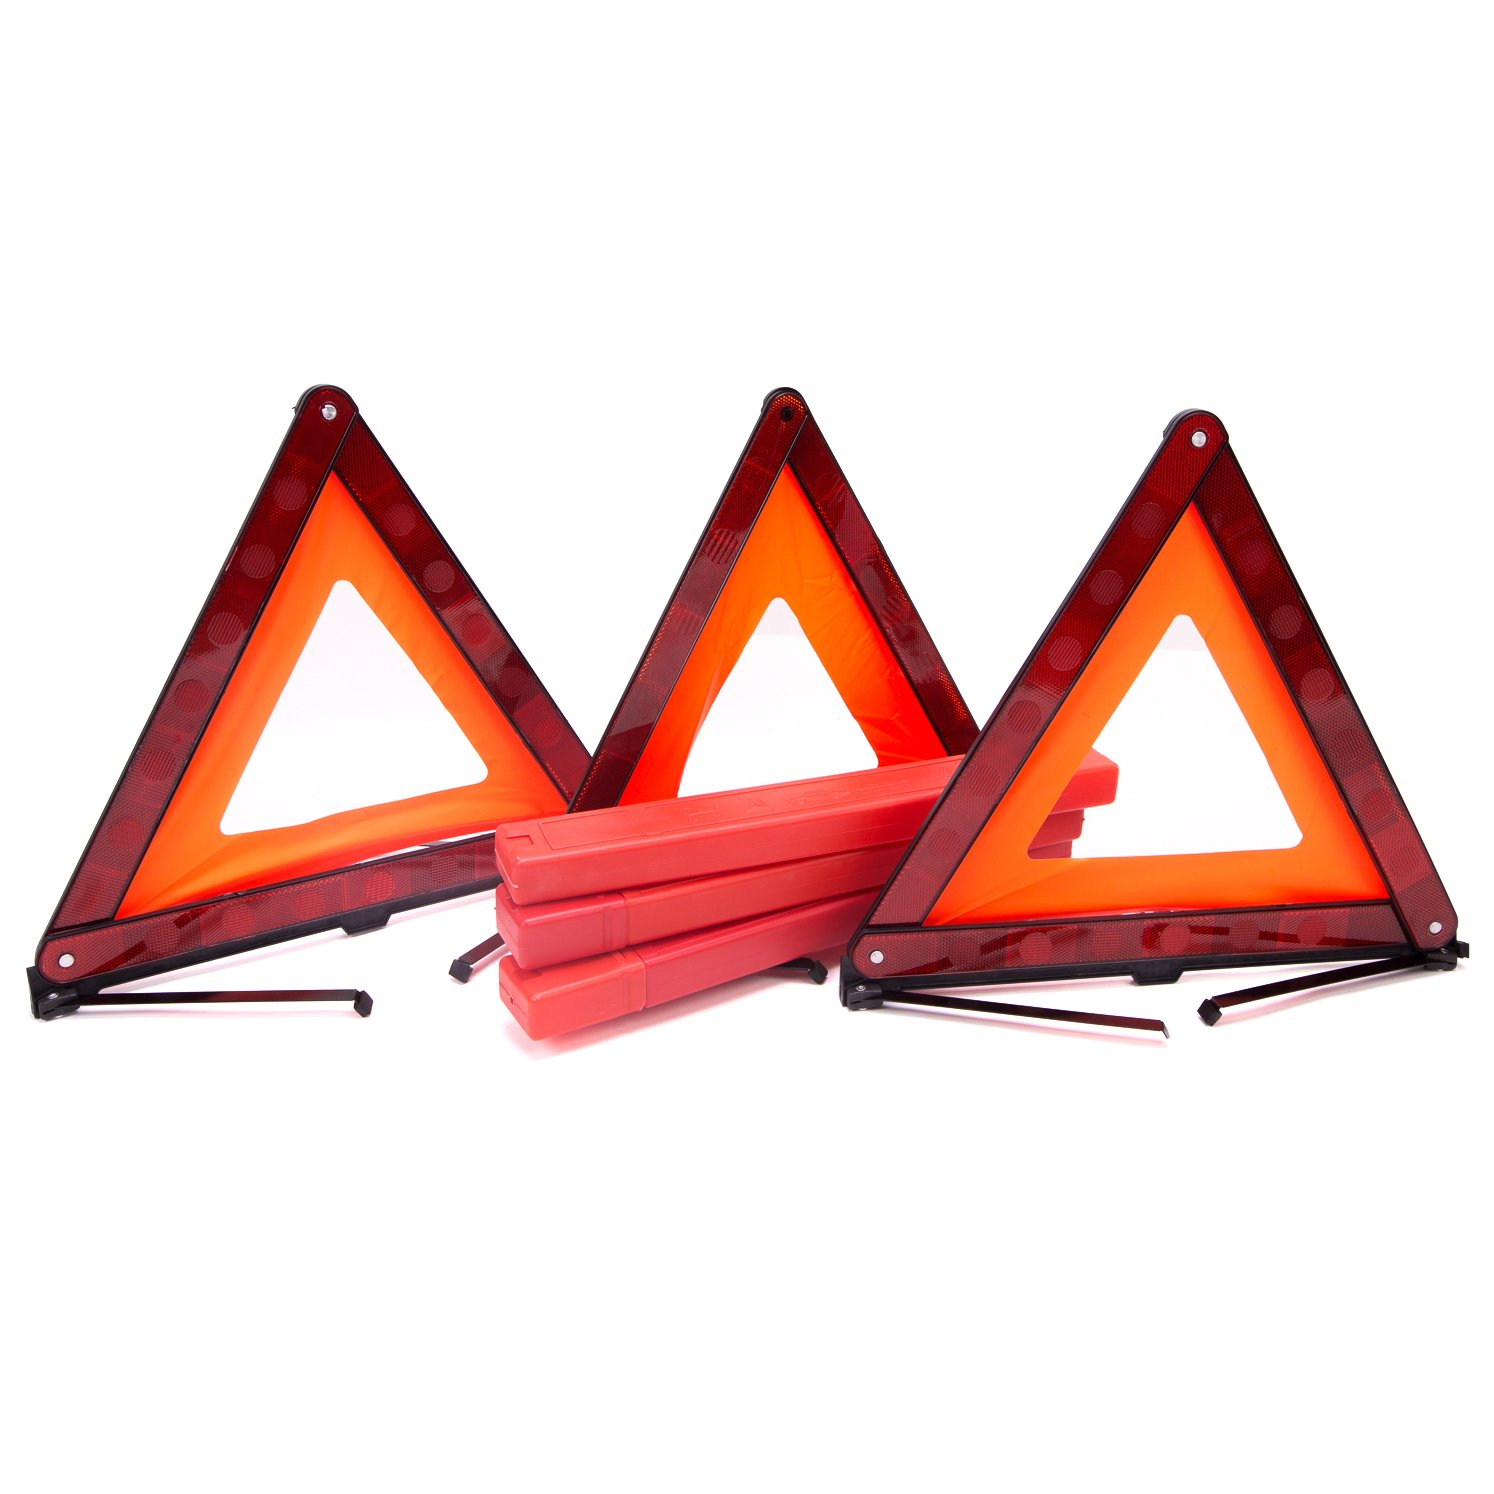 Fasmov Triple Warning Triangle Emergency Warning Triangle Reflector Safety Triangle Kit,3-Pack by Fasmov